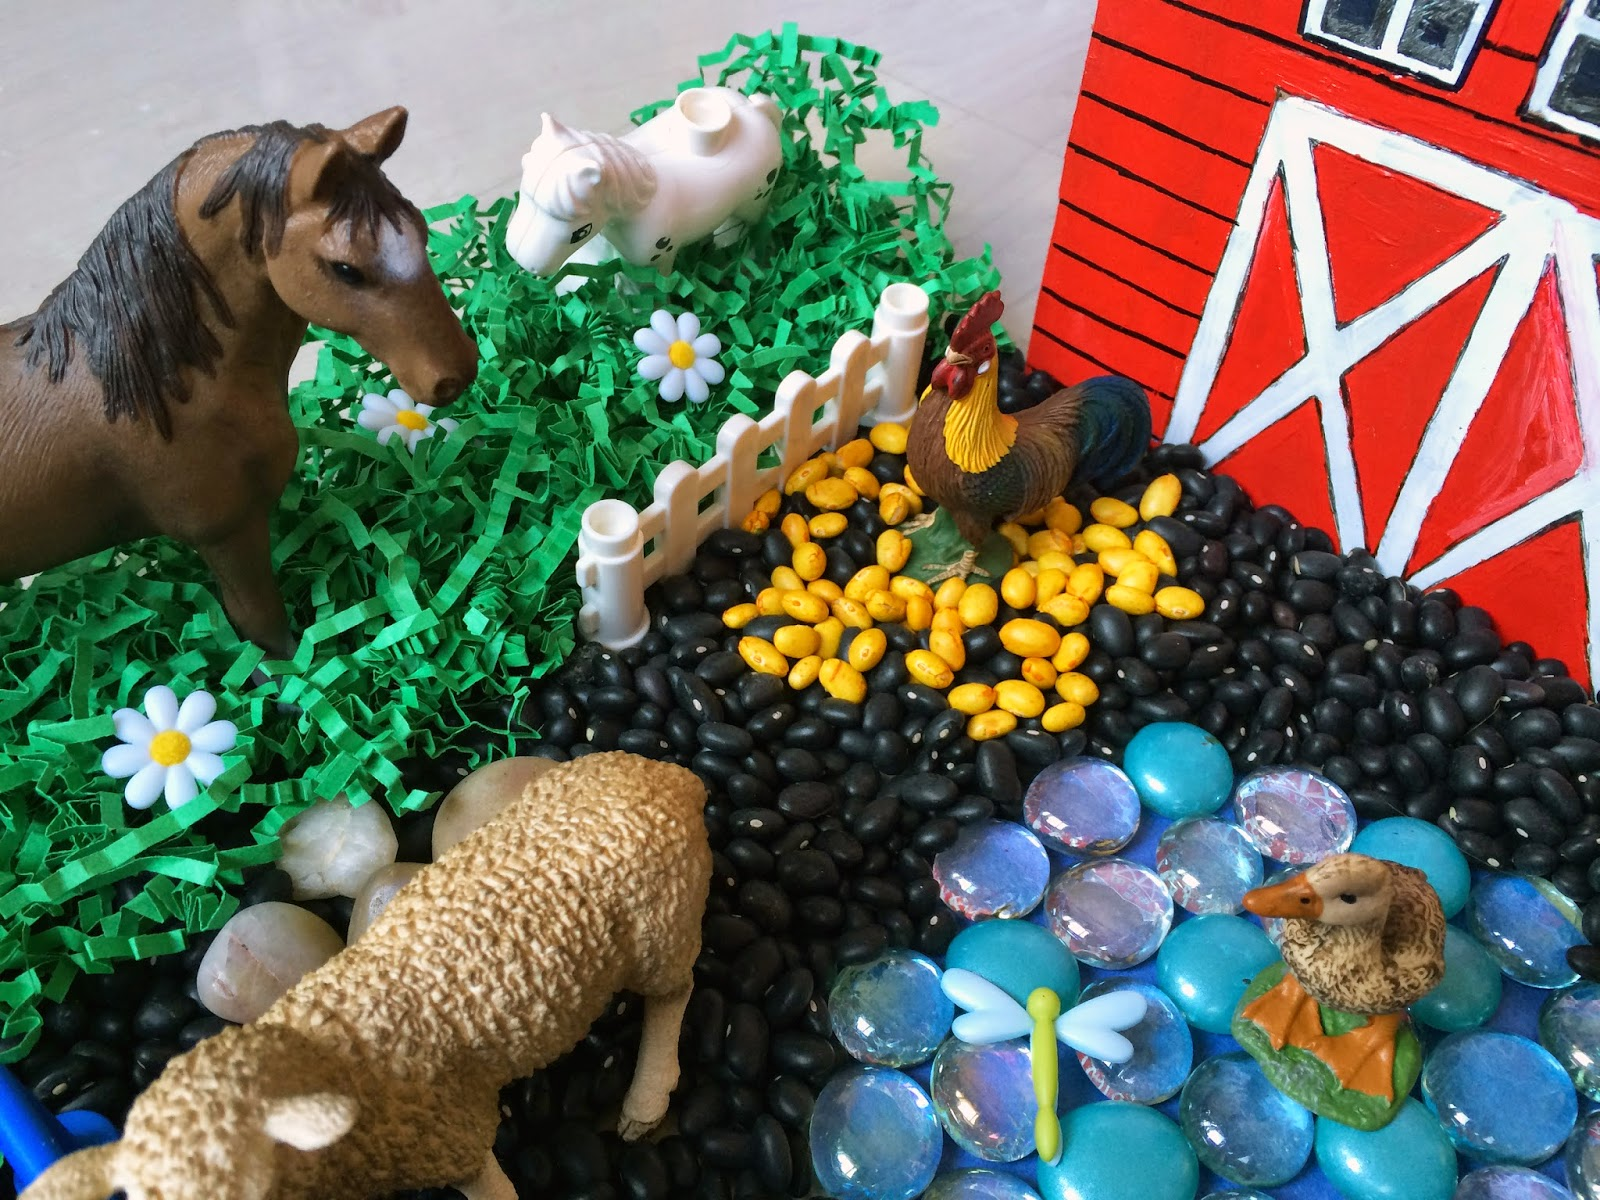 animal farm projects Farm animal crafts for kids: make your own barn animals such as sheep, horses, cows, ducks, chickens with arts & crafts projects and activities for children, teens.